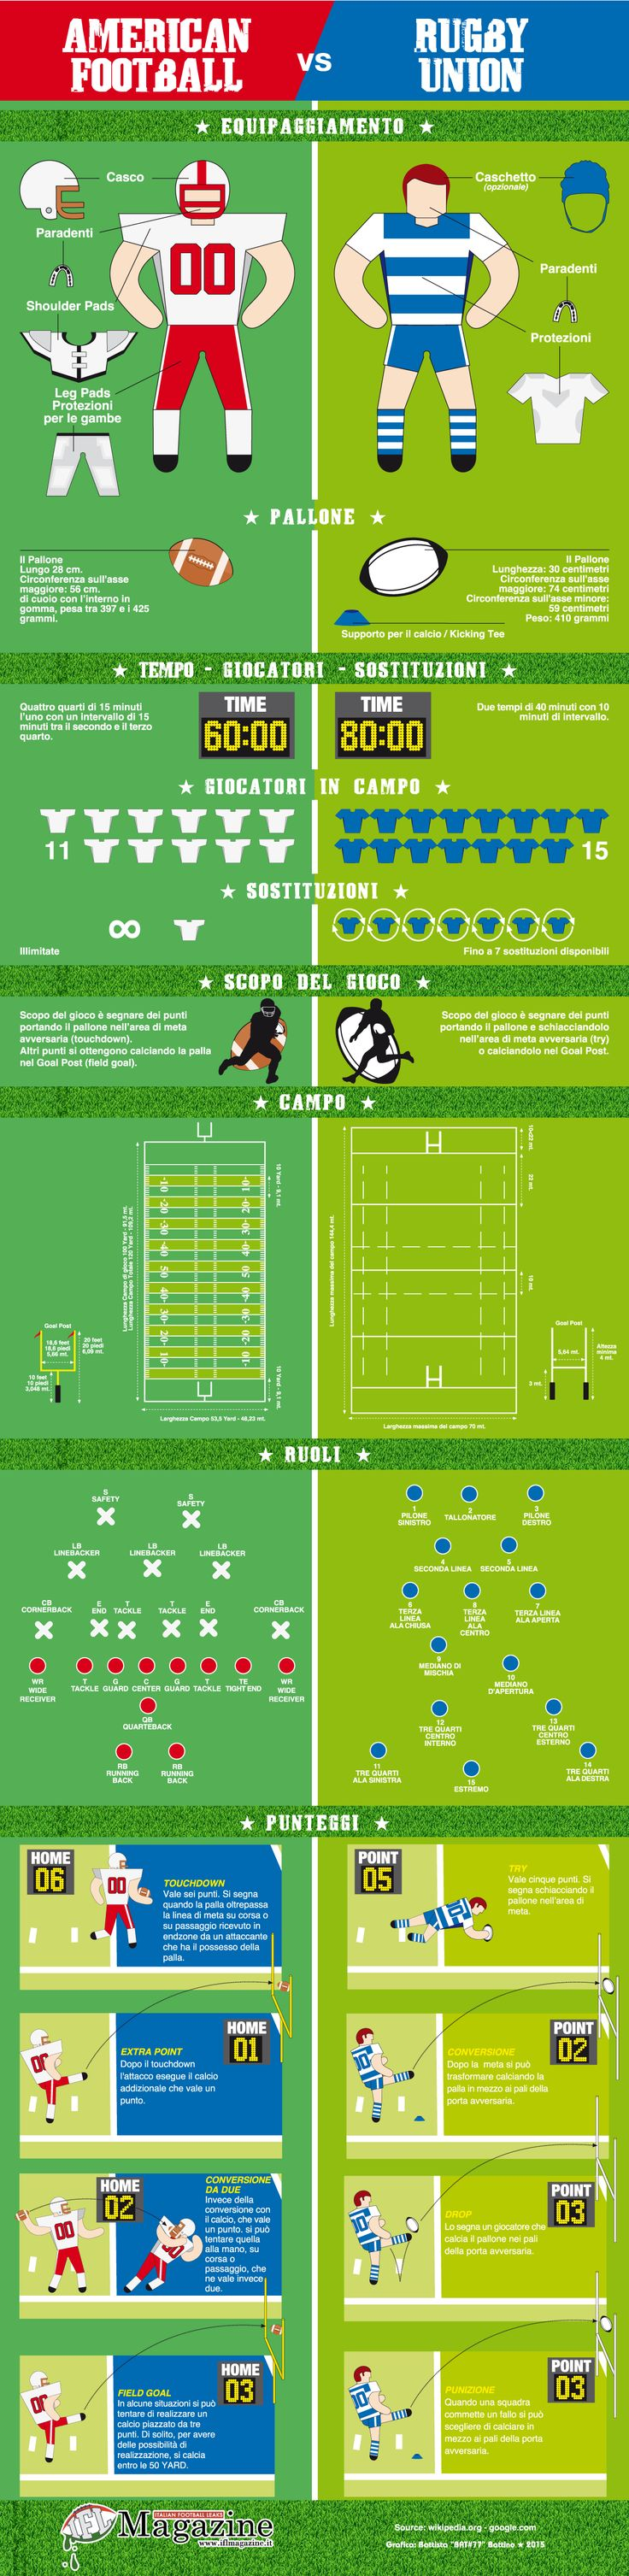 American Football vs Rugby Union